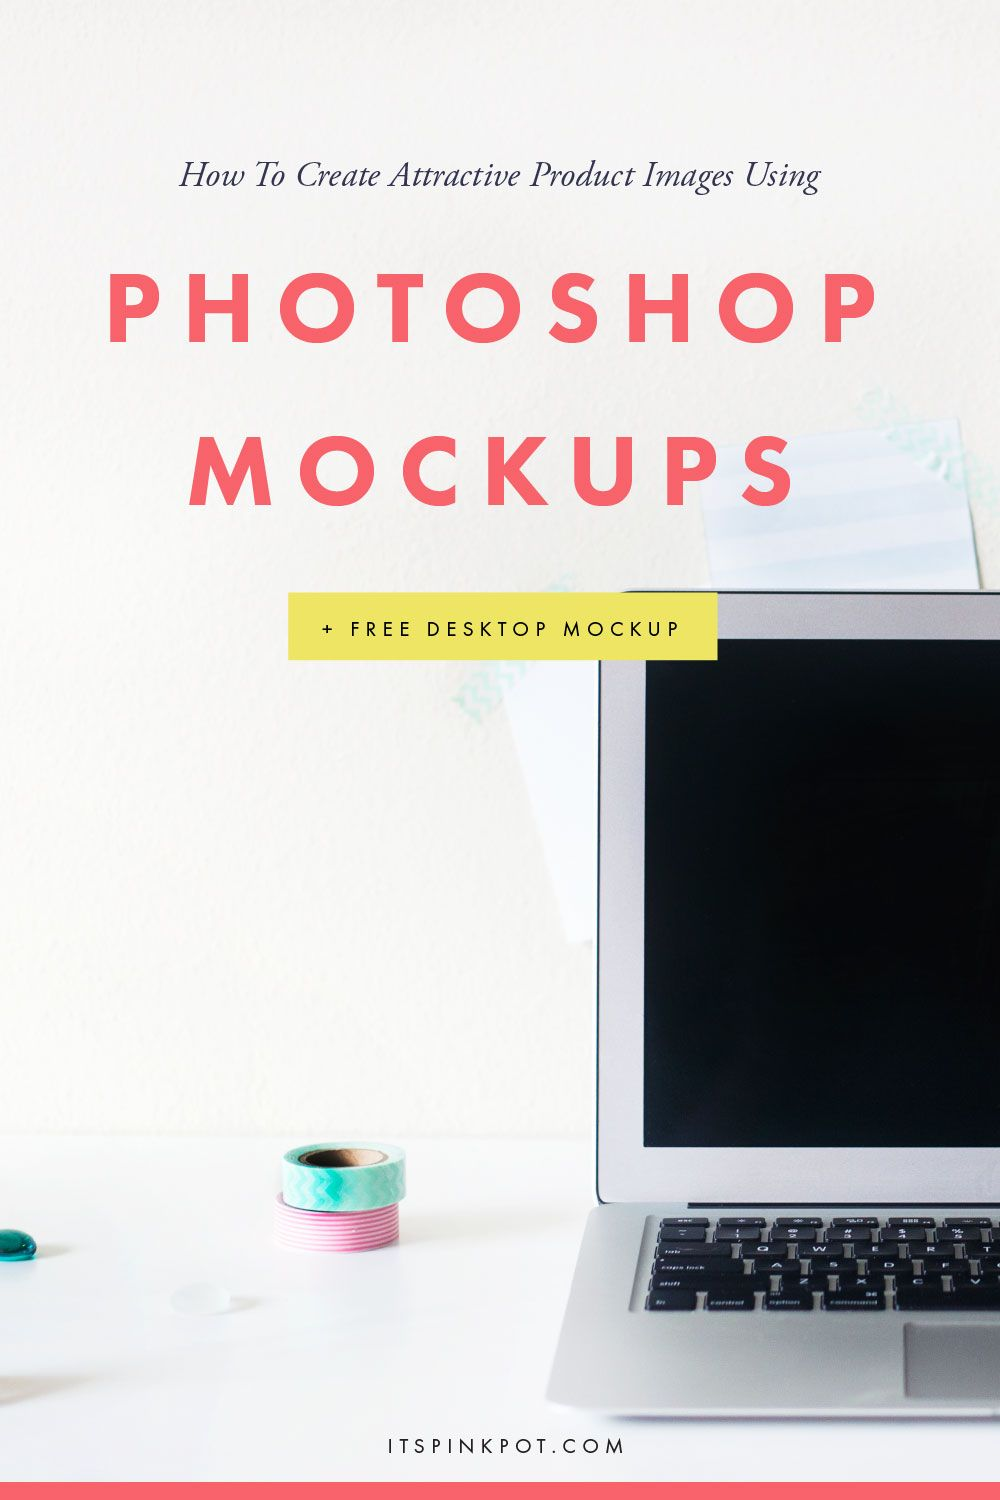 How To Use Mockups To Create Attractive Product Photos Free Styled Mockup Pinkpot Studio Web Marketing Photoshop Mockup Free Internet Marketing Strategy